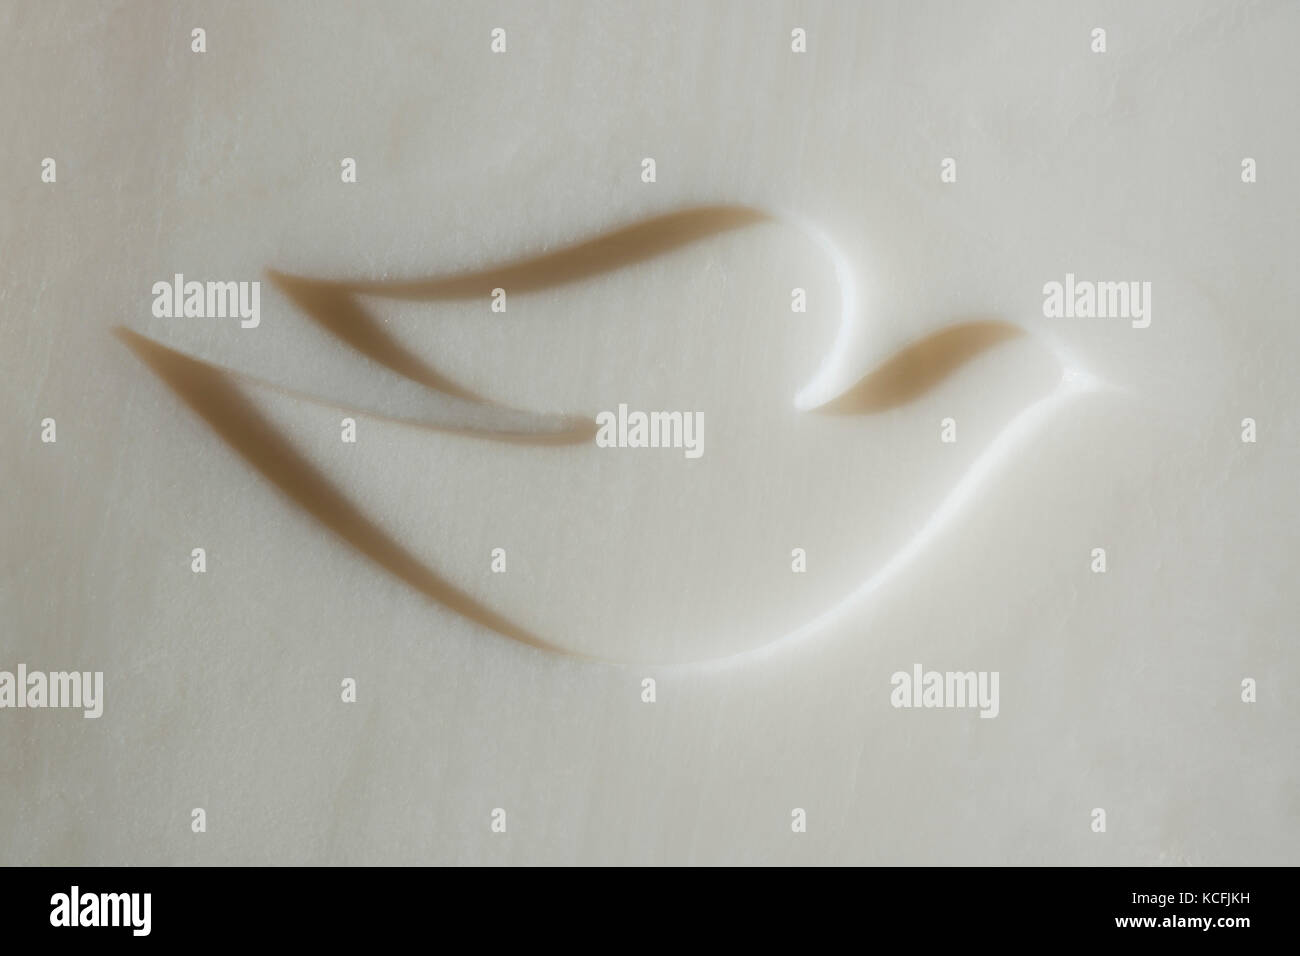 Unilever soap stock photos unilever soap stock images alamy a close up of the dove logo embossed into a bar of the unilever brand soap biocorpaavc Images